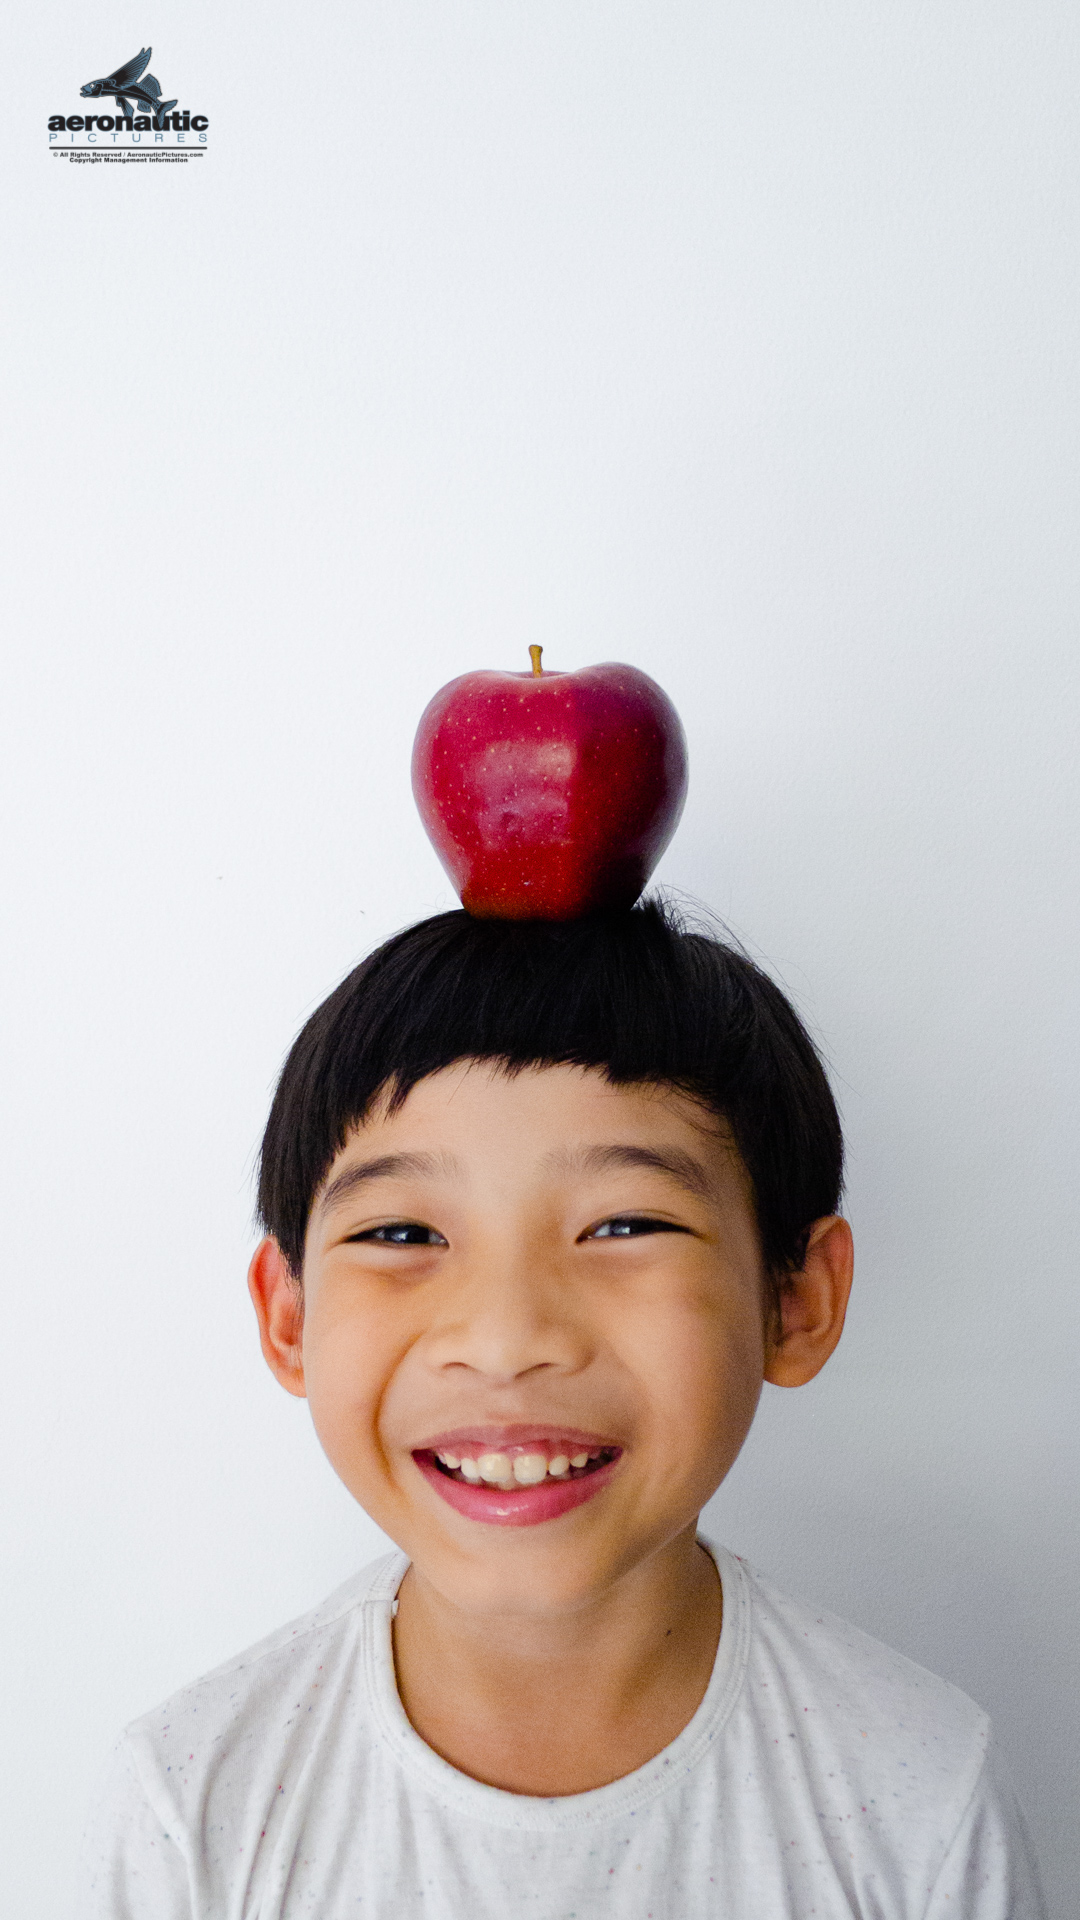 Happy Boy Child Smiling with Apple on His Head